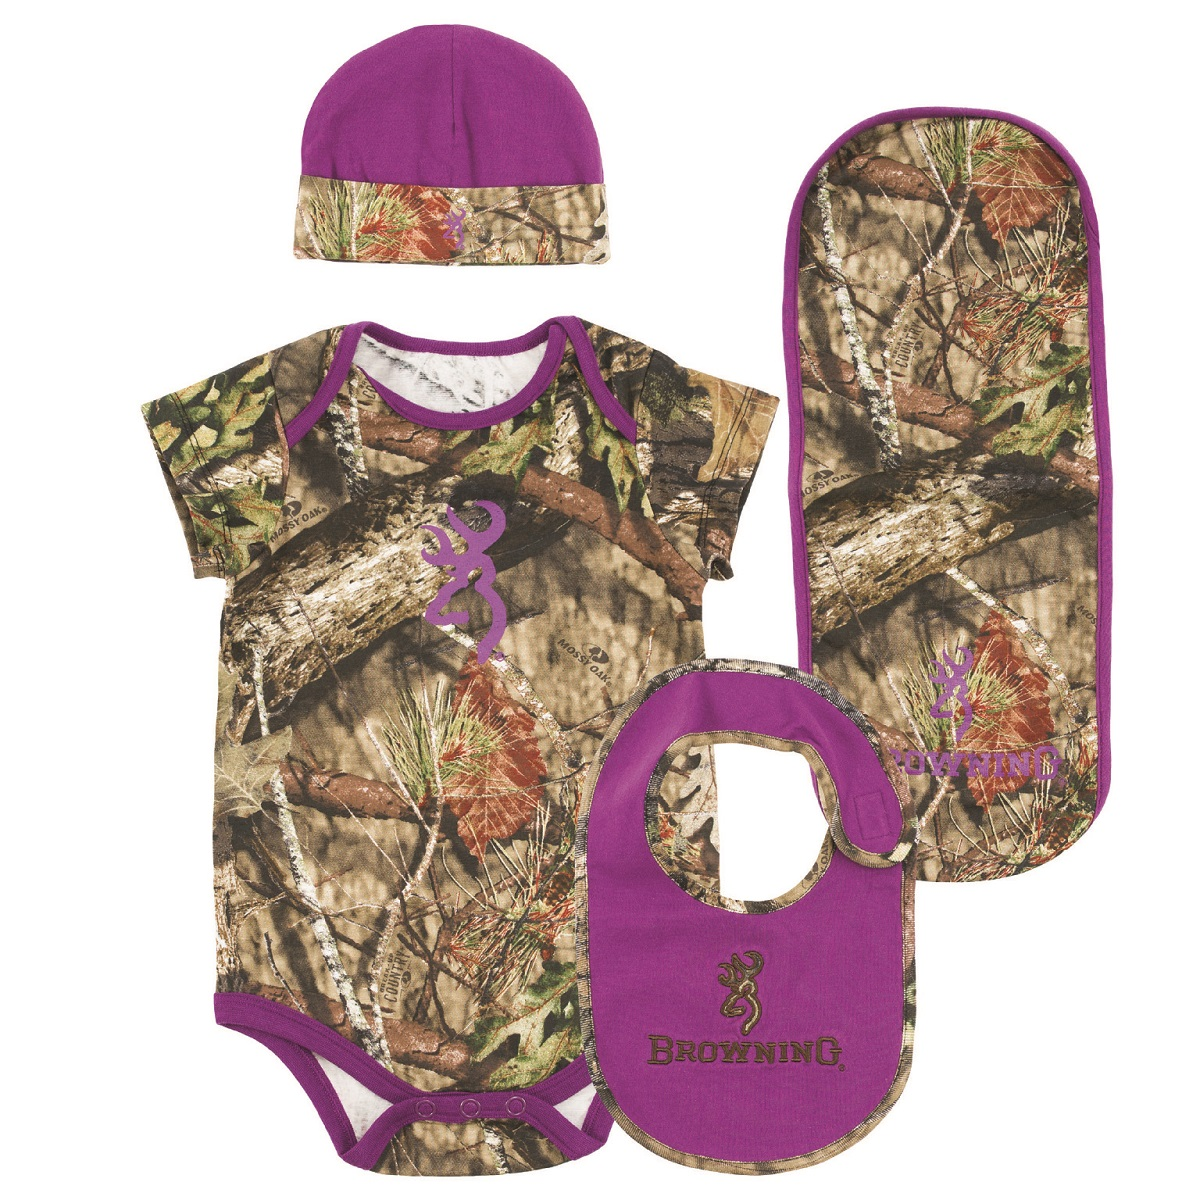 Browning Baby Camo Purple Infant Set